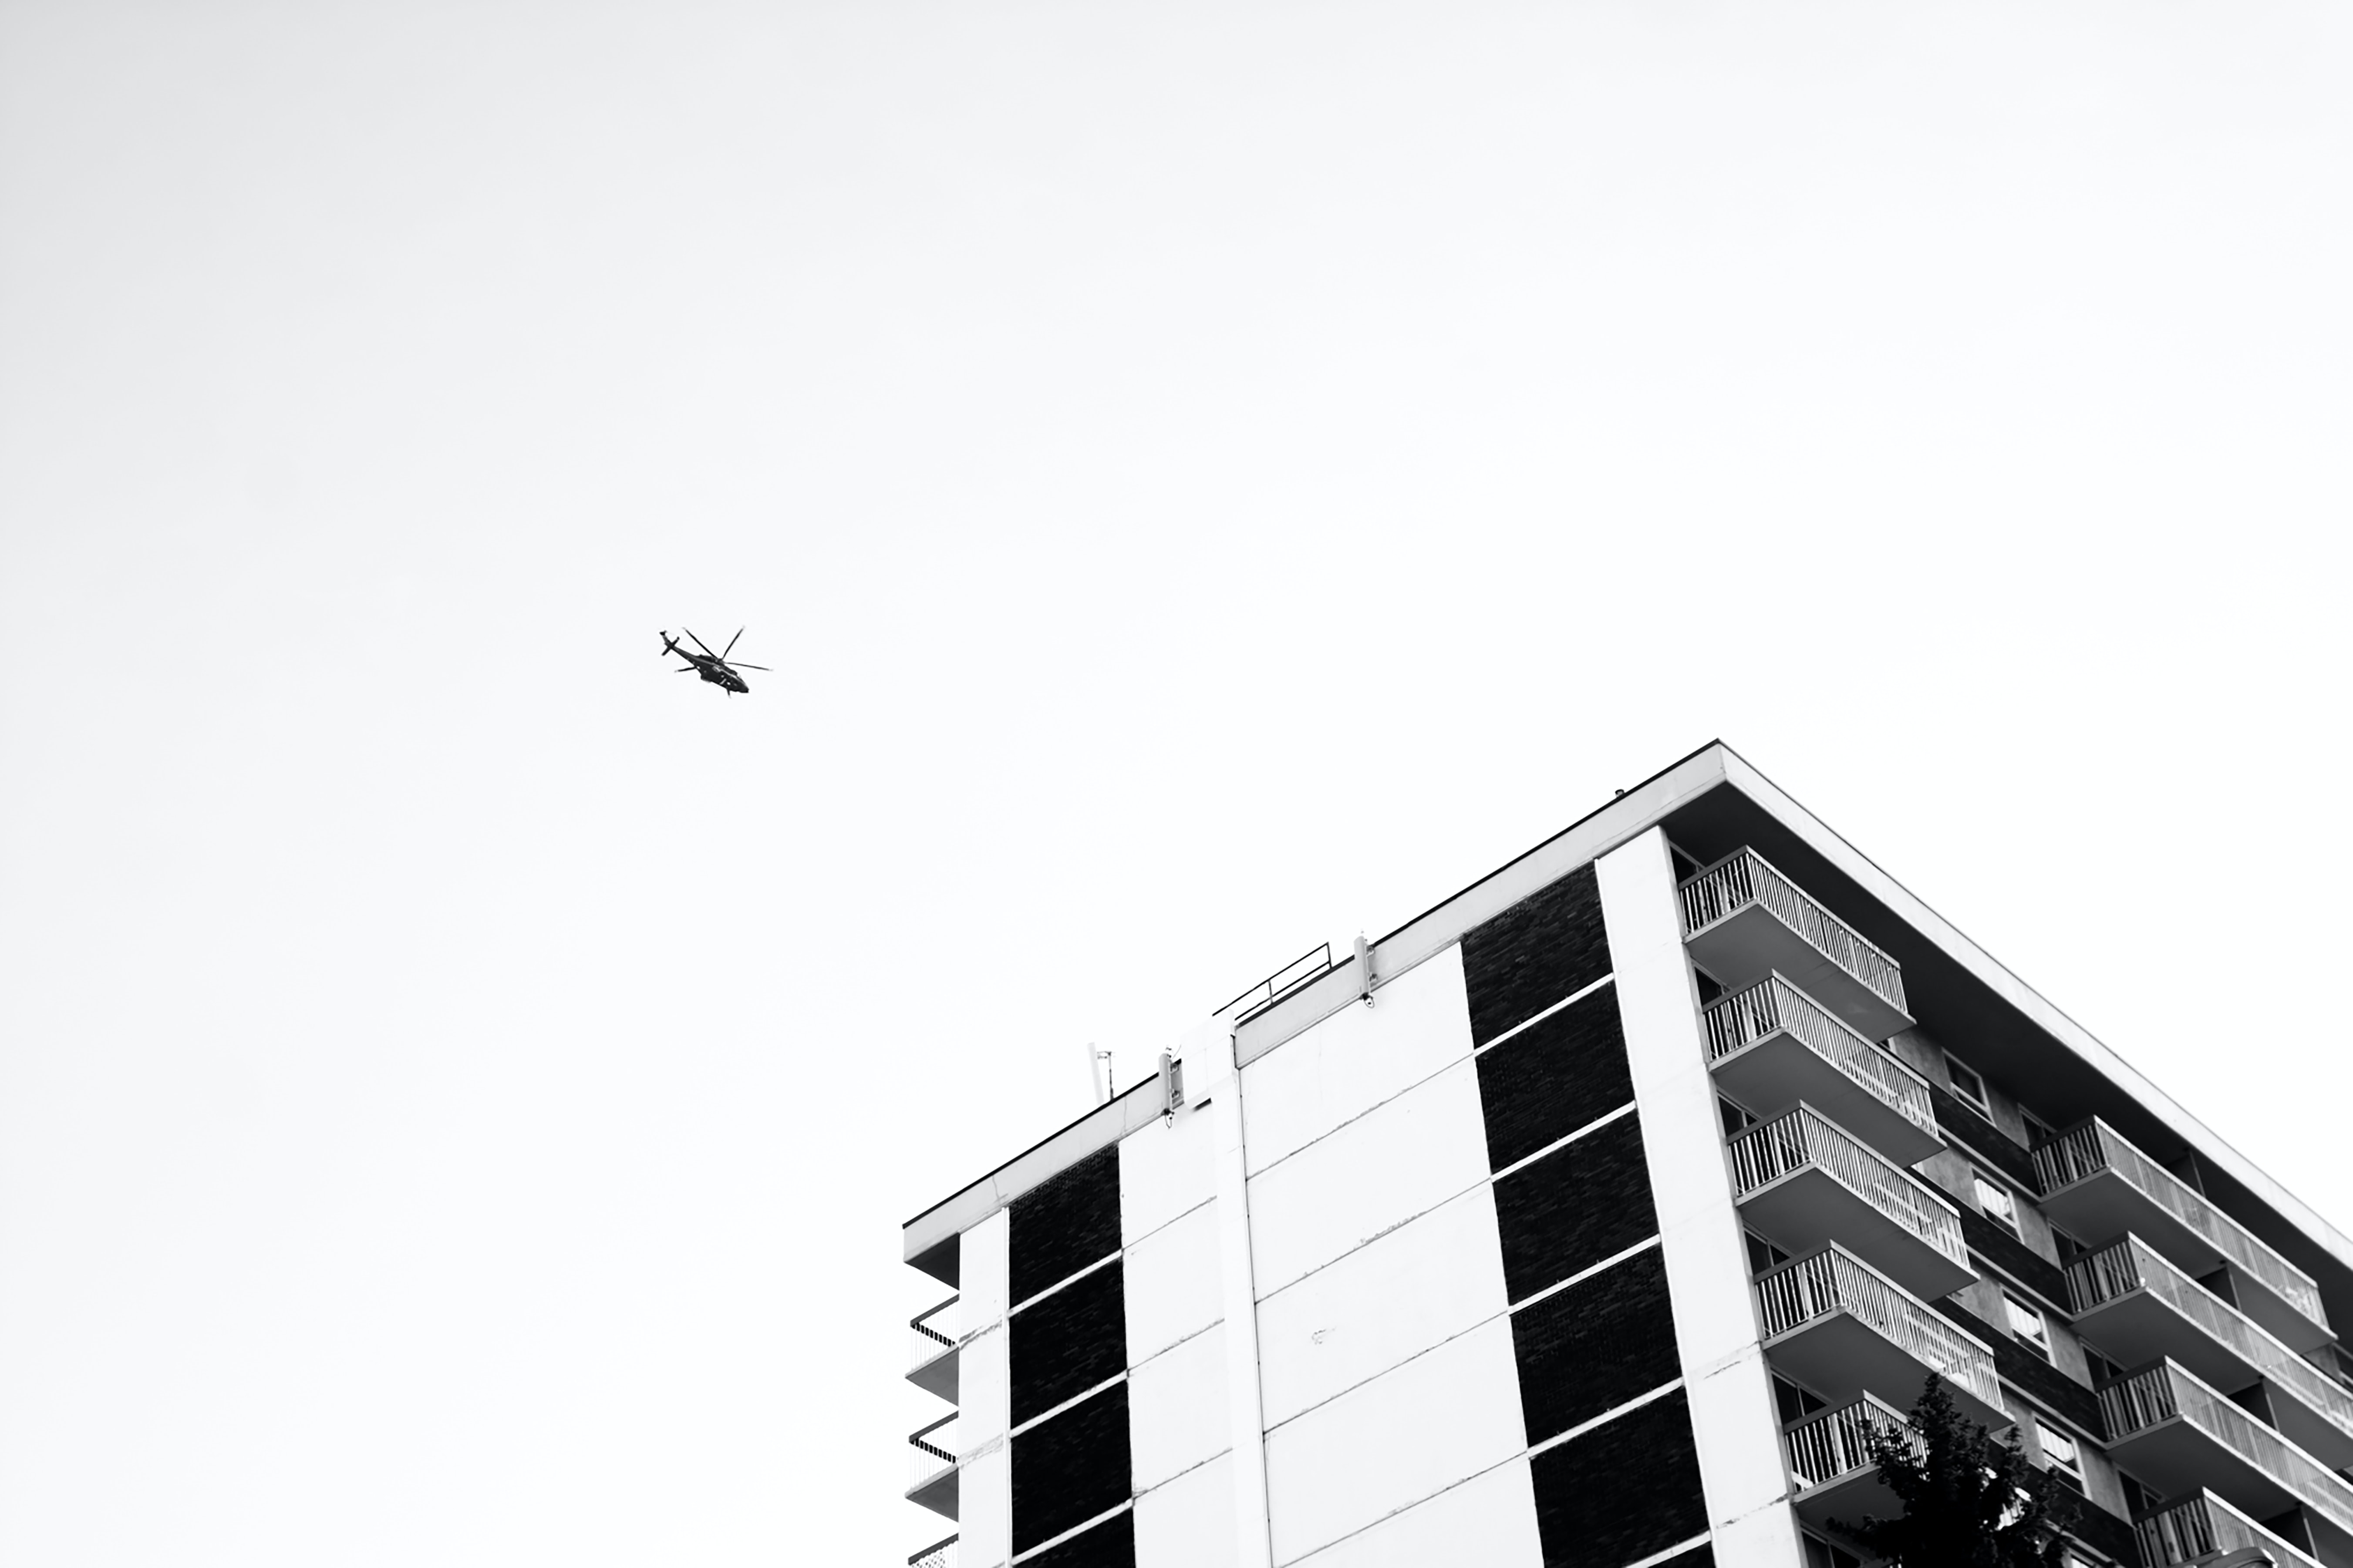 grayscale photo of airplane and building